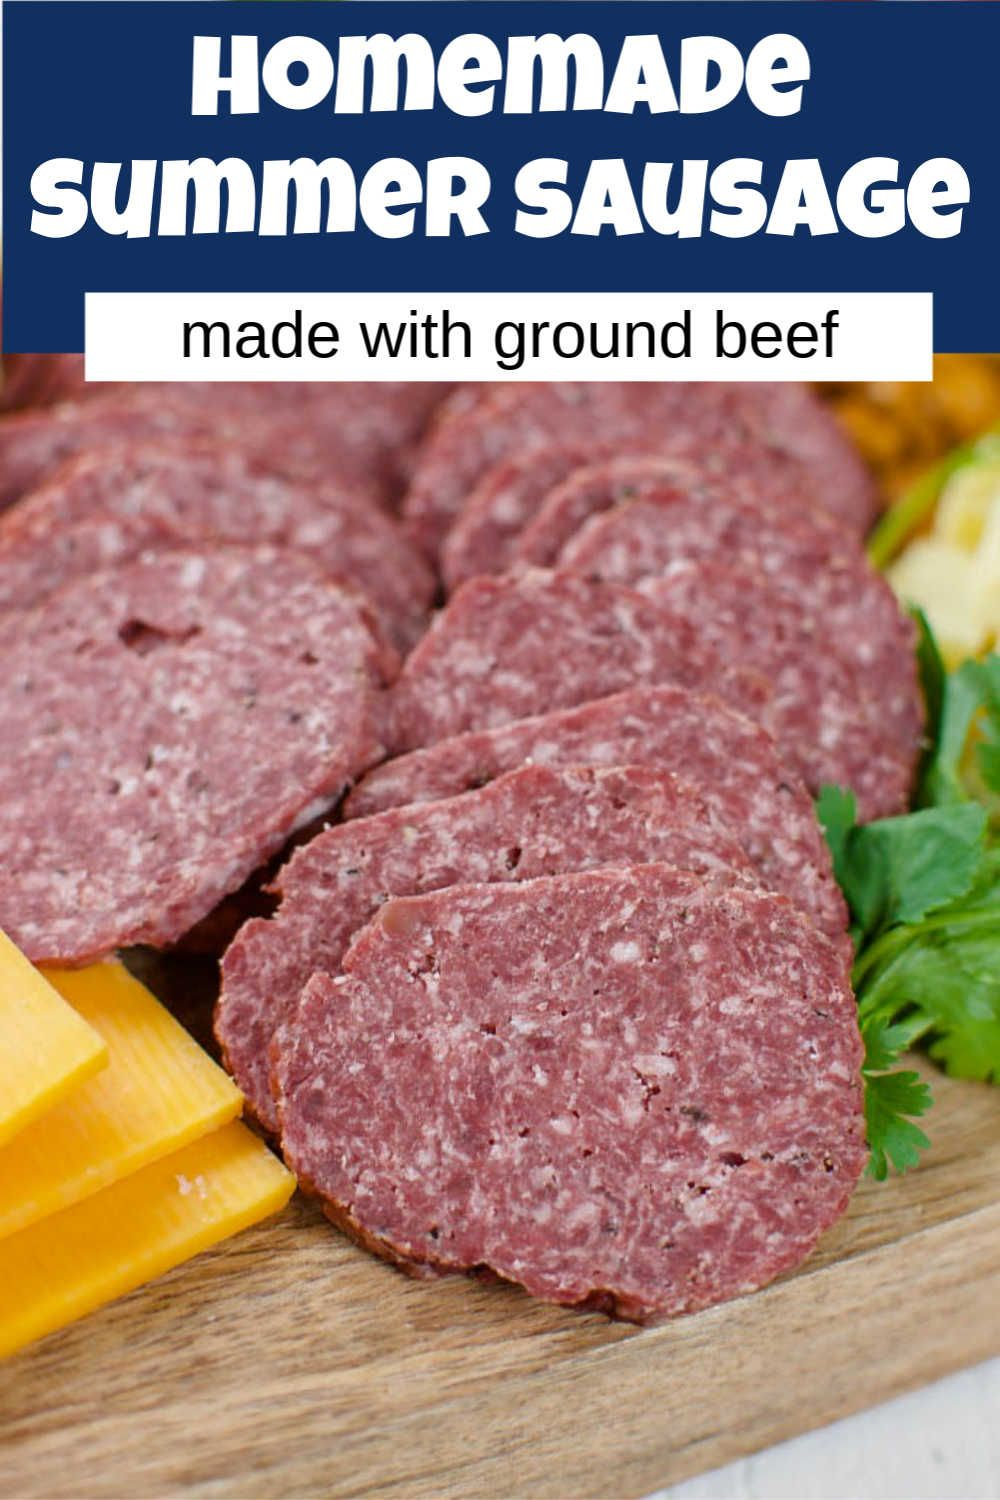 Homemade Summer Sausage Made With Ground Beef In 2020 Summer Sausage Recipes Homemade Sausage Recipes Beef Sausage Recipes